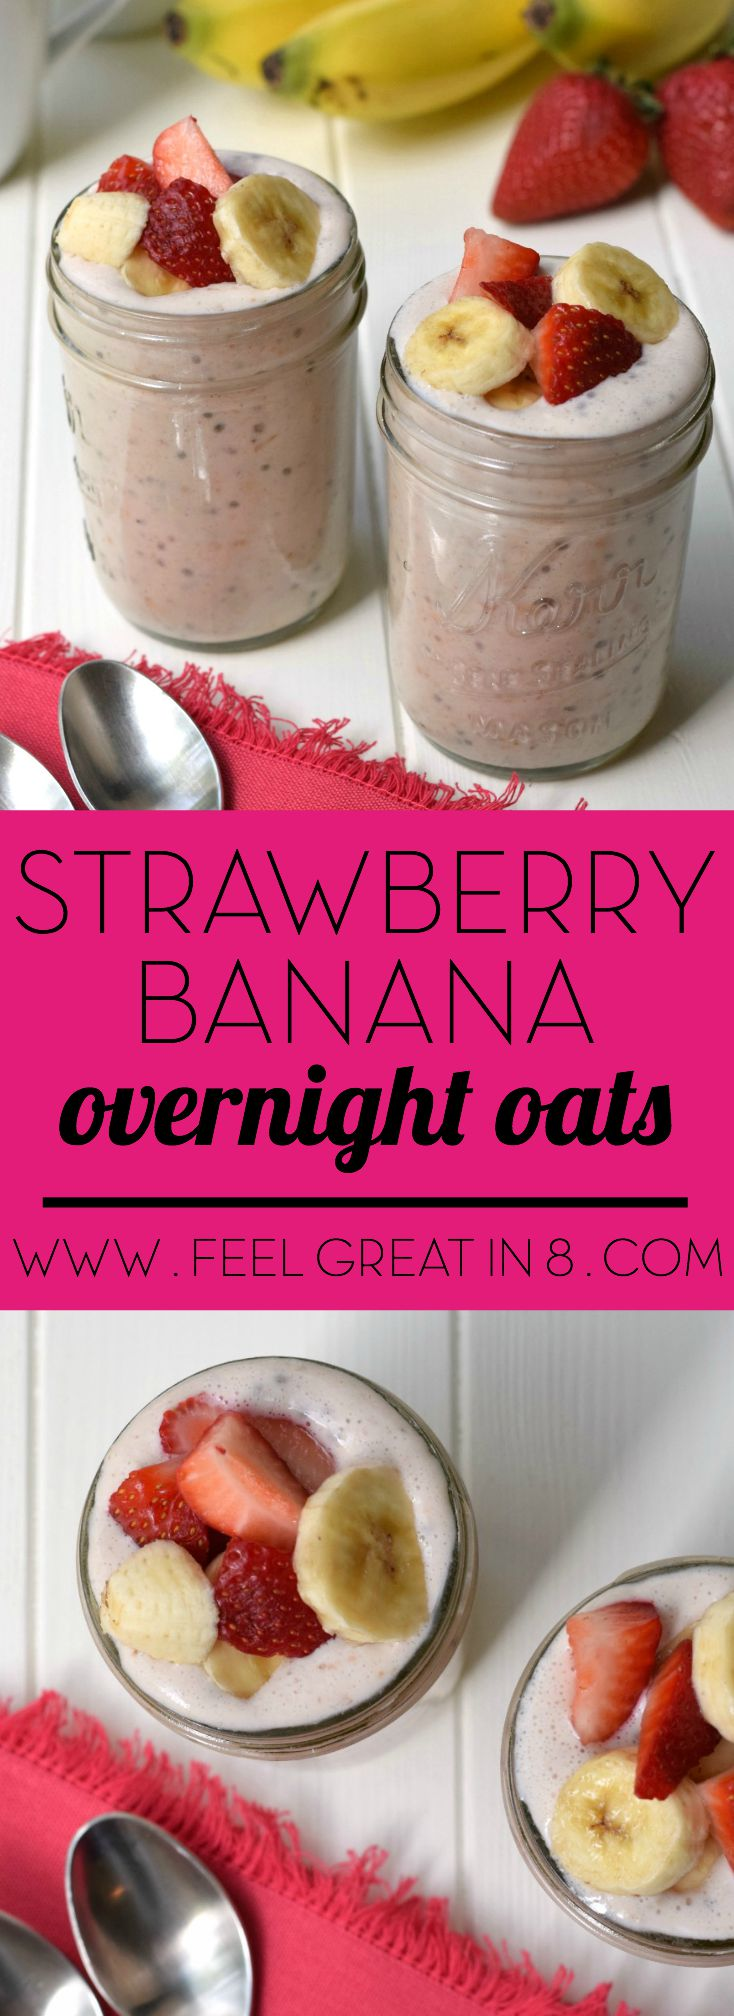 This simple and delicious Strawberry Banana Overnight Oatmeal is no-cook, has no refined sugar, and gives you 5g of fiber and 13g of protein per serving! It's the perfect healthy, quick, and easy breakfast! | Feel Great in 8